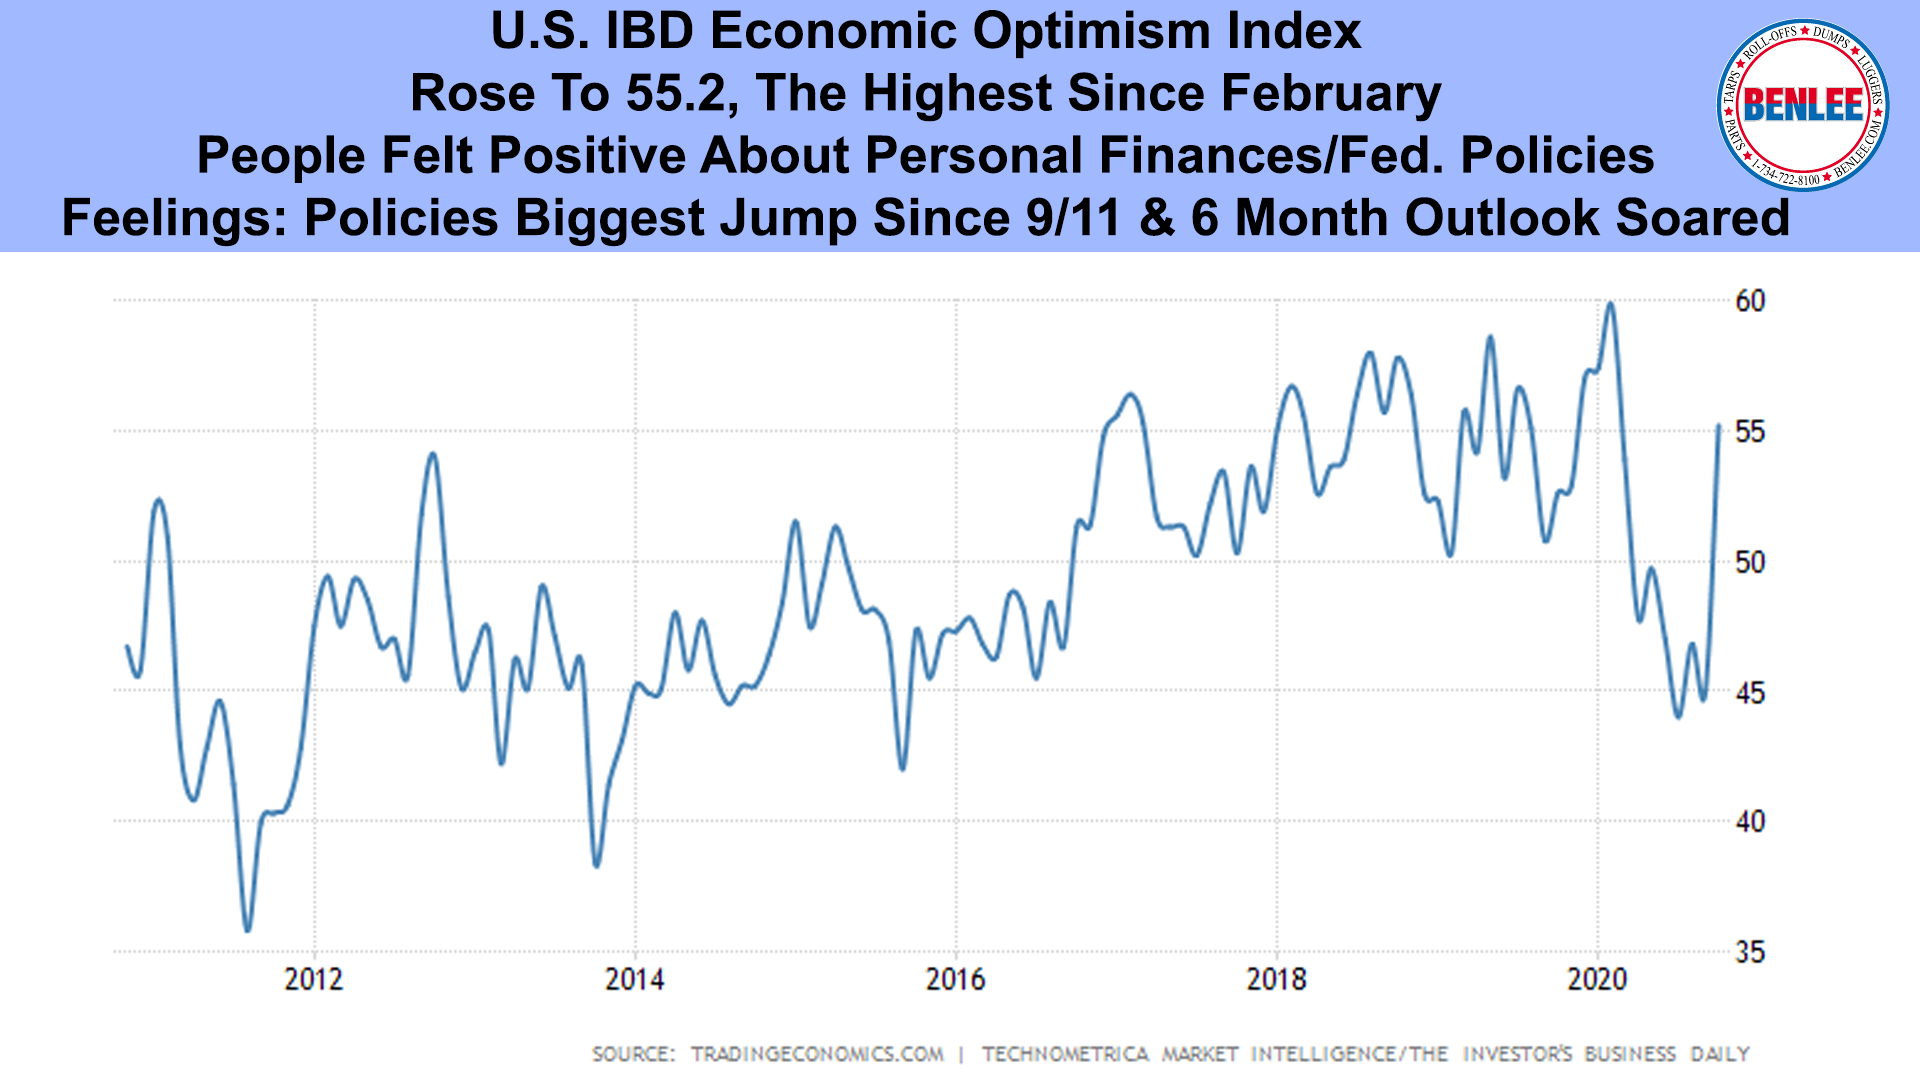 U.S. IBD Economic Optimism Index